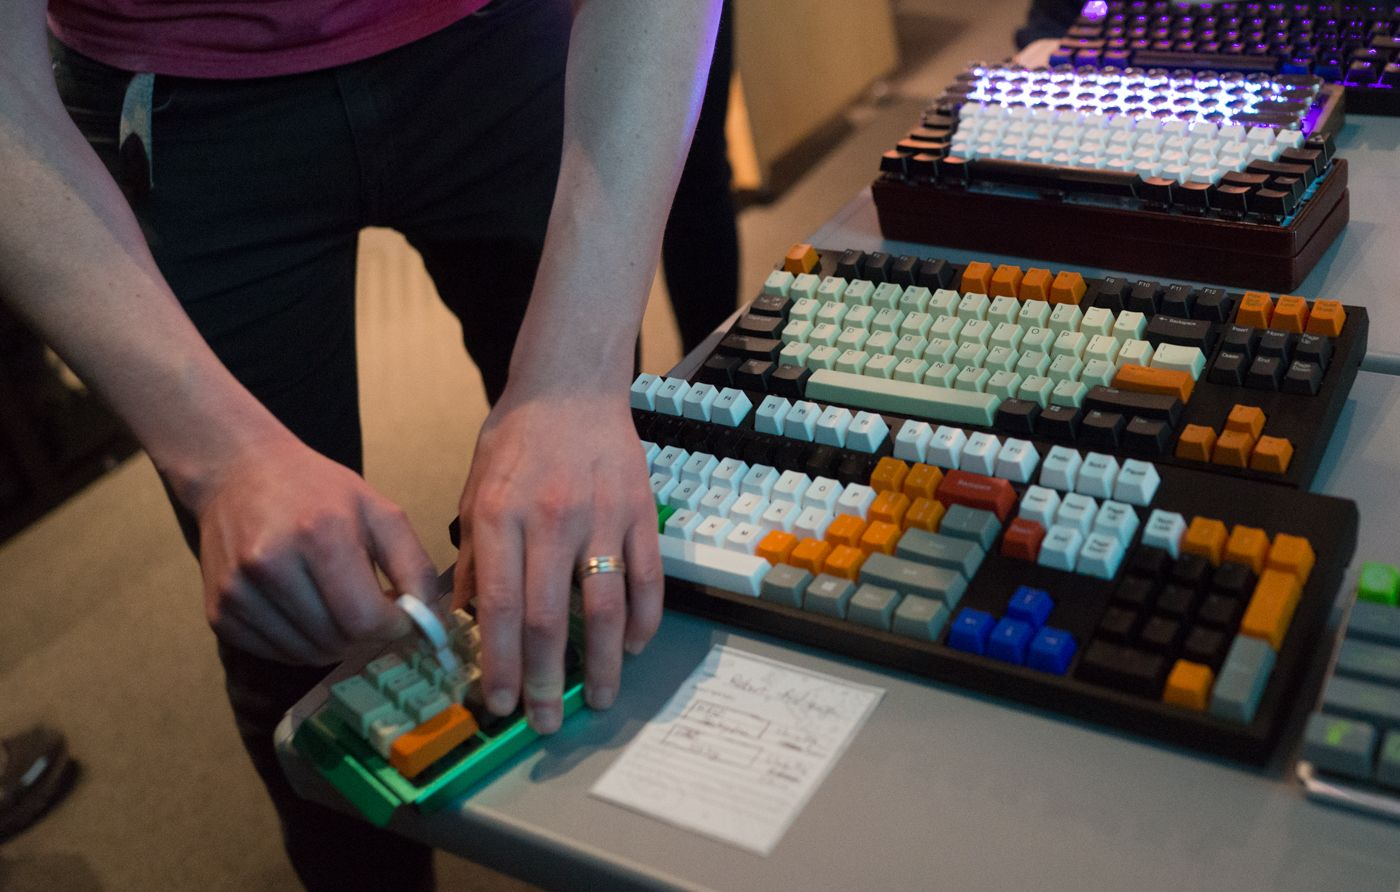 Numpad with different kinds of switches.